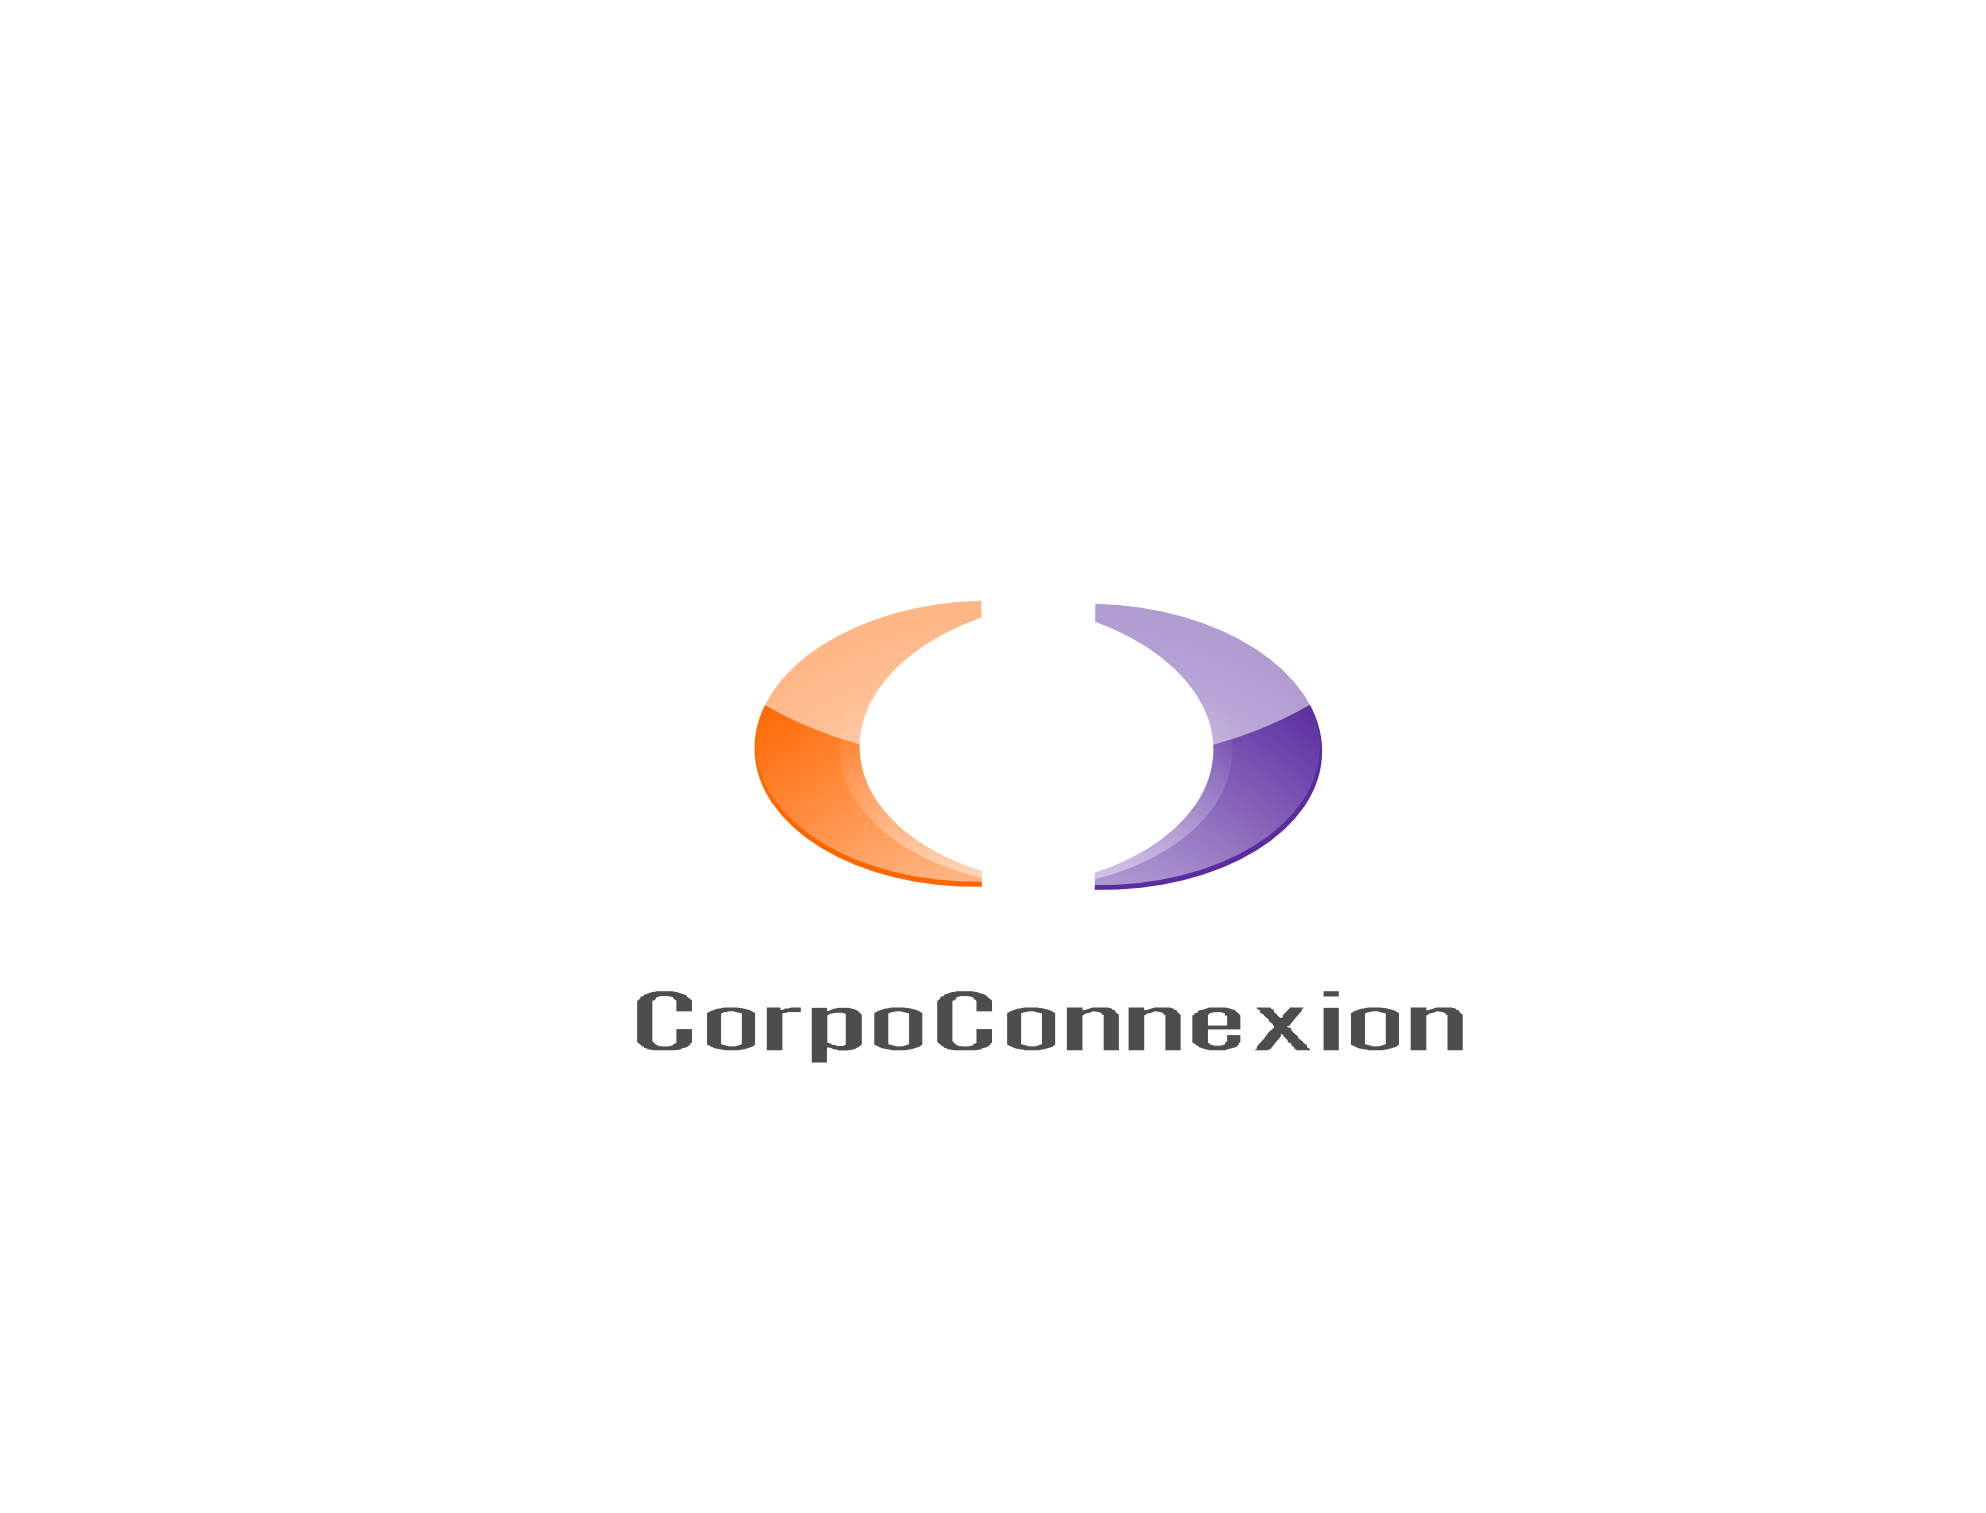 Logo Design by Joseph calunsag Cagaanan - Entry No. 120 in the Logo Design Contest Fun Logo Design for Corpo Connexion.